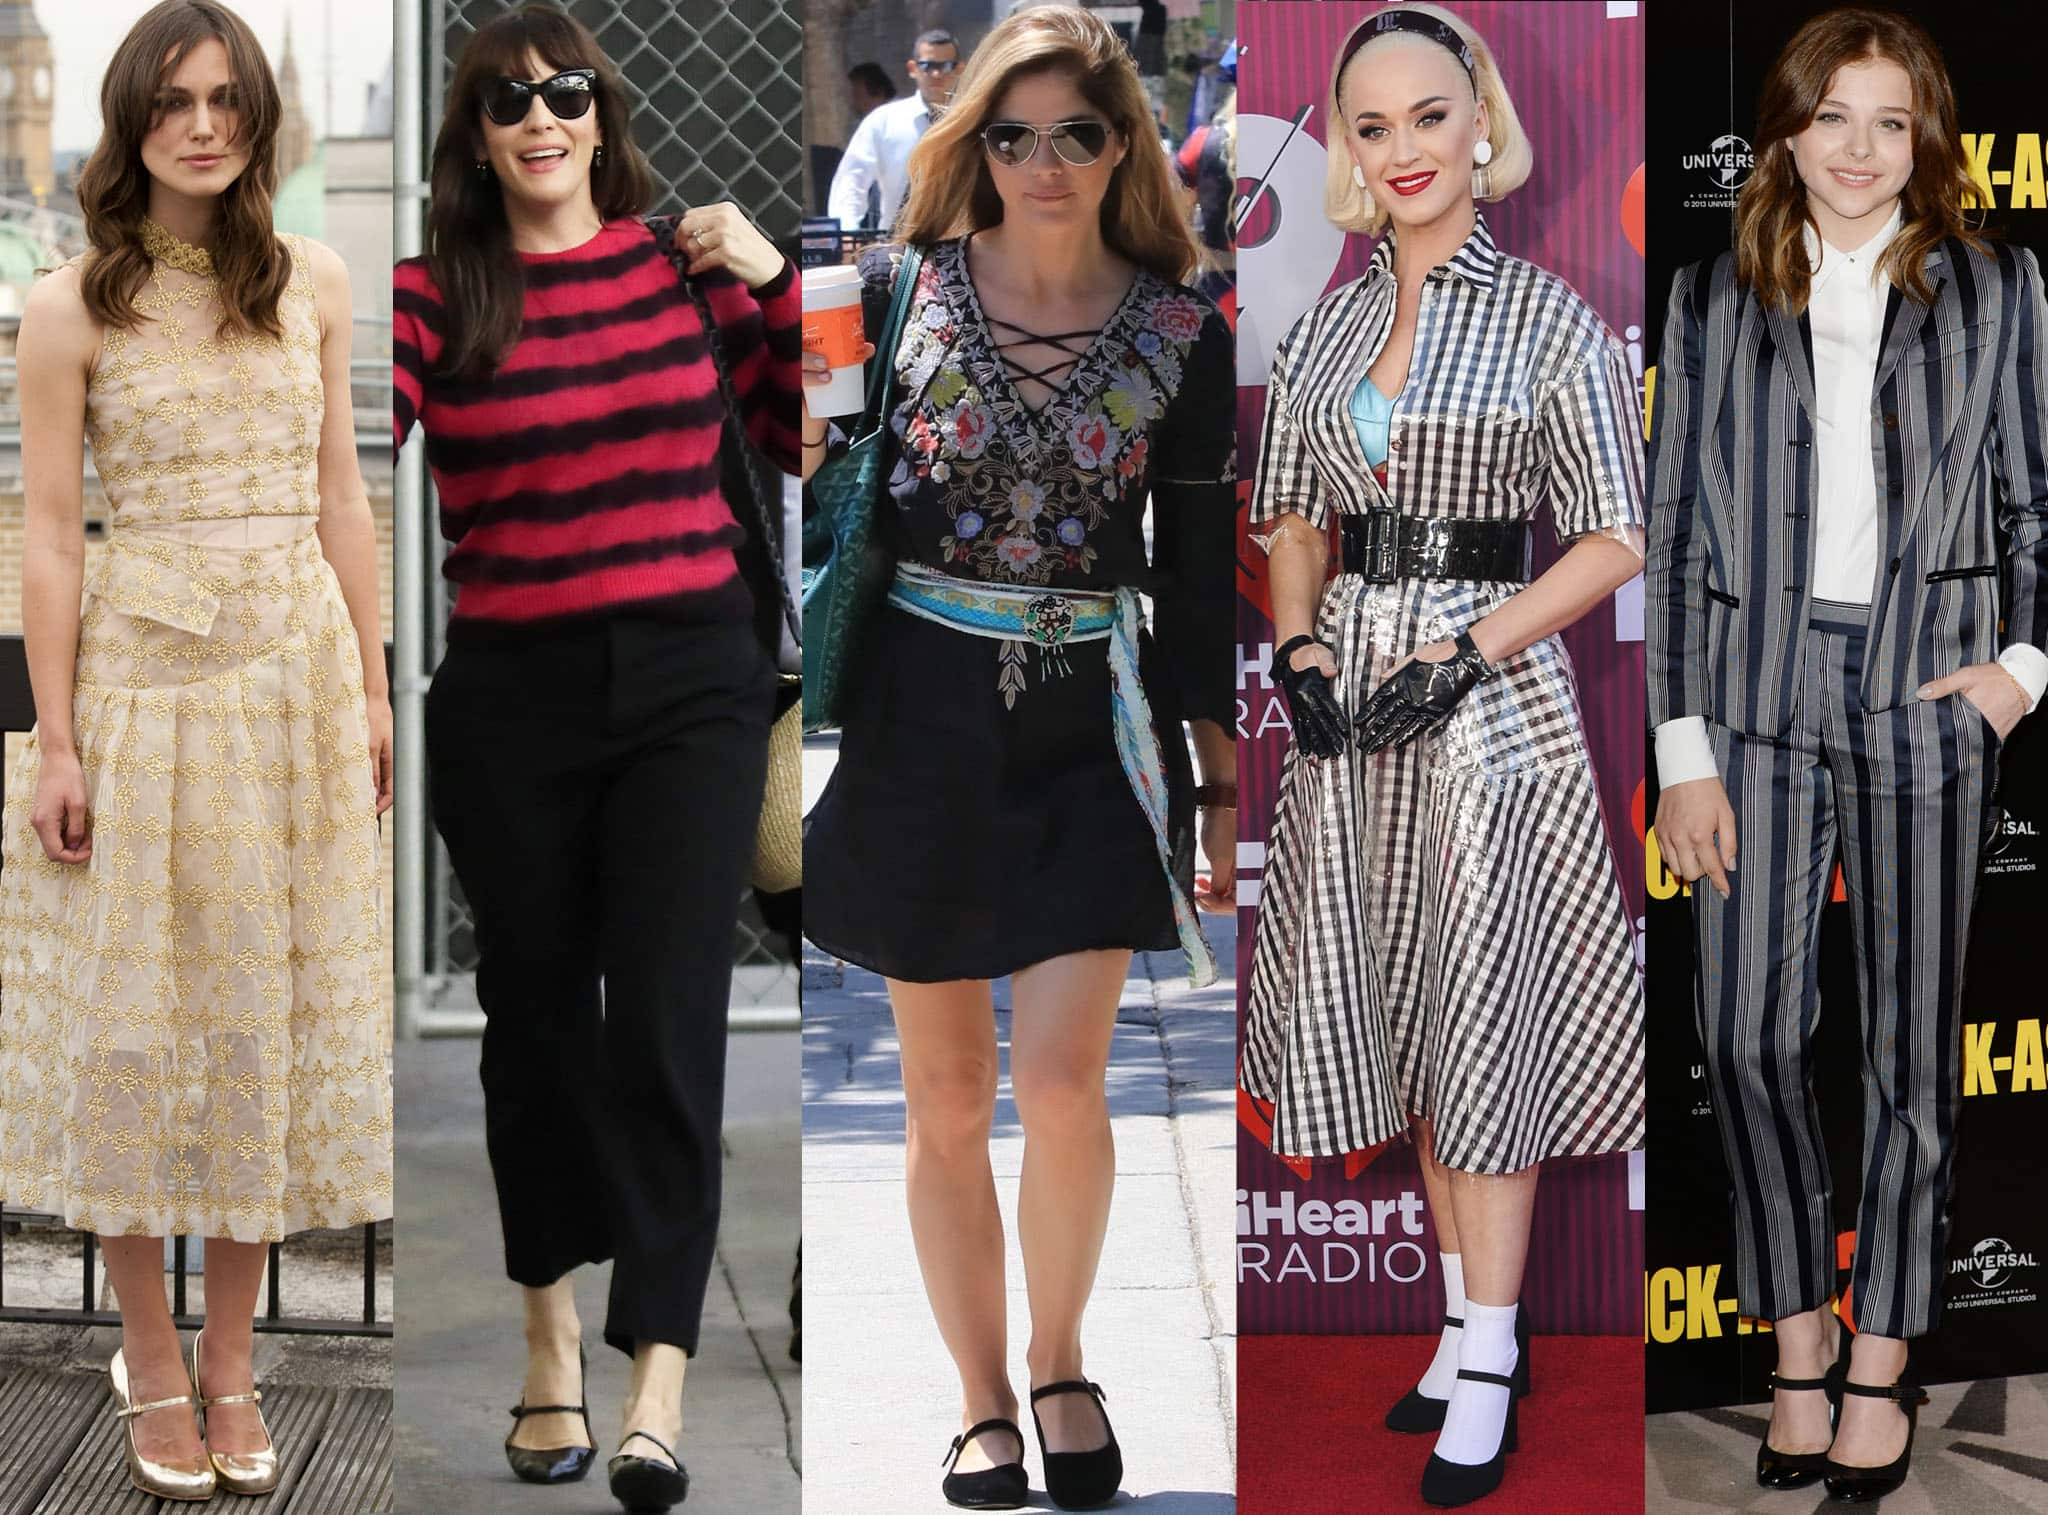 Keira Knightley, Liv Tyler, Selma Blair, Katy Perry, and Chloe Moretz show how to wear Mary Jane shoes with chic outfits